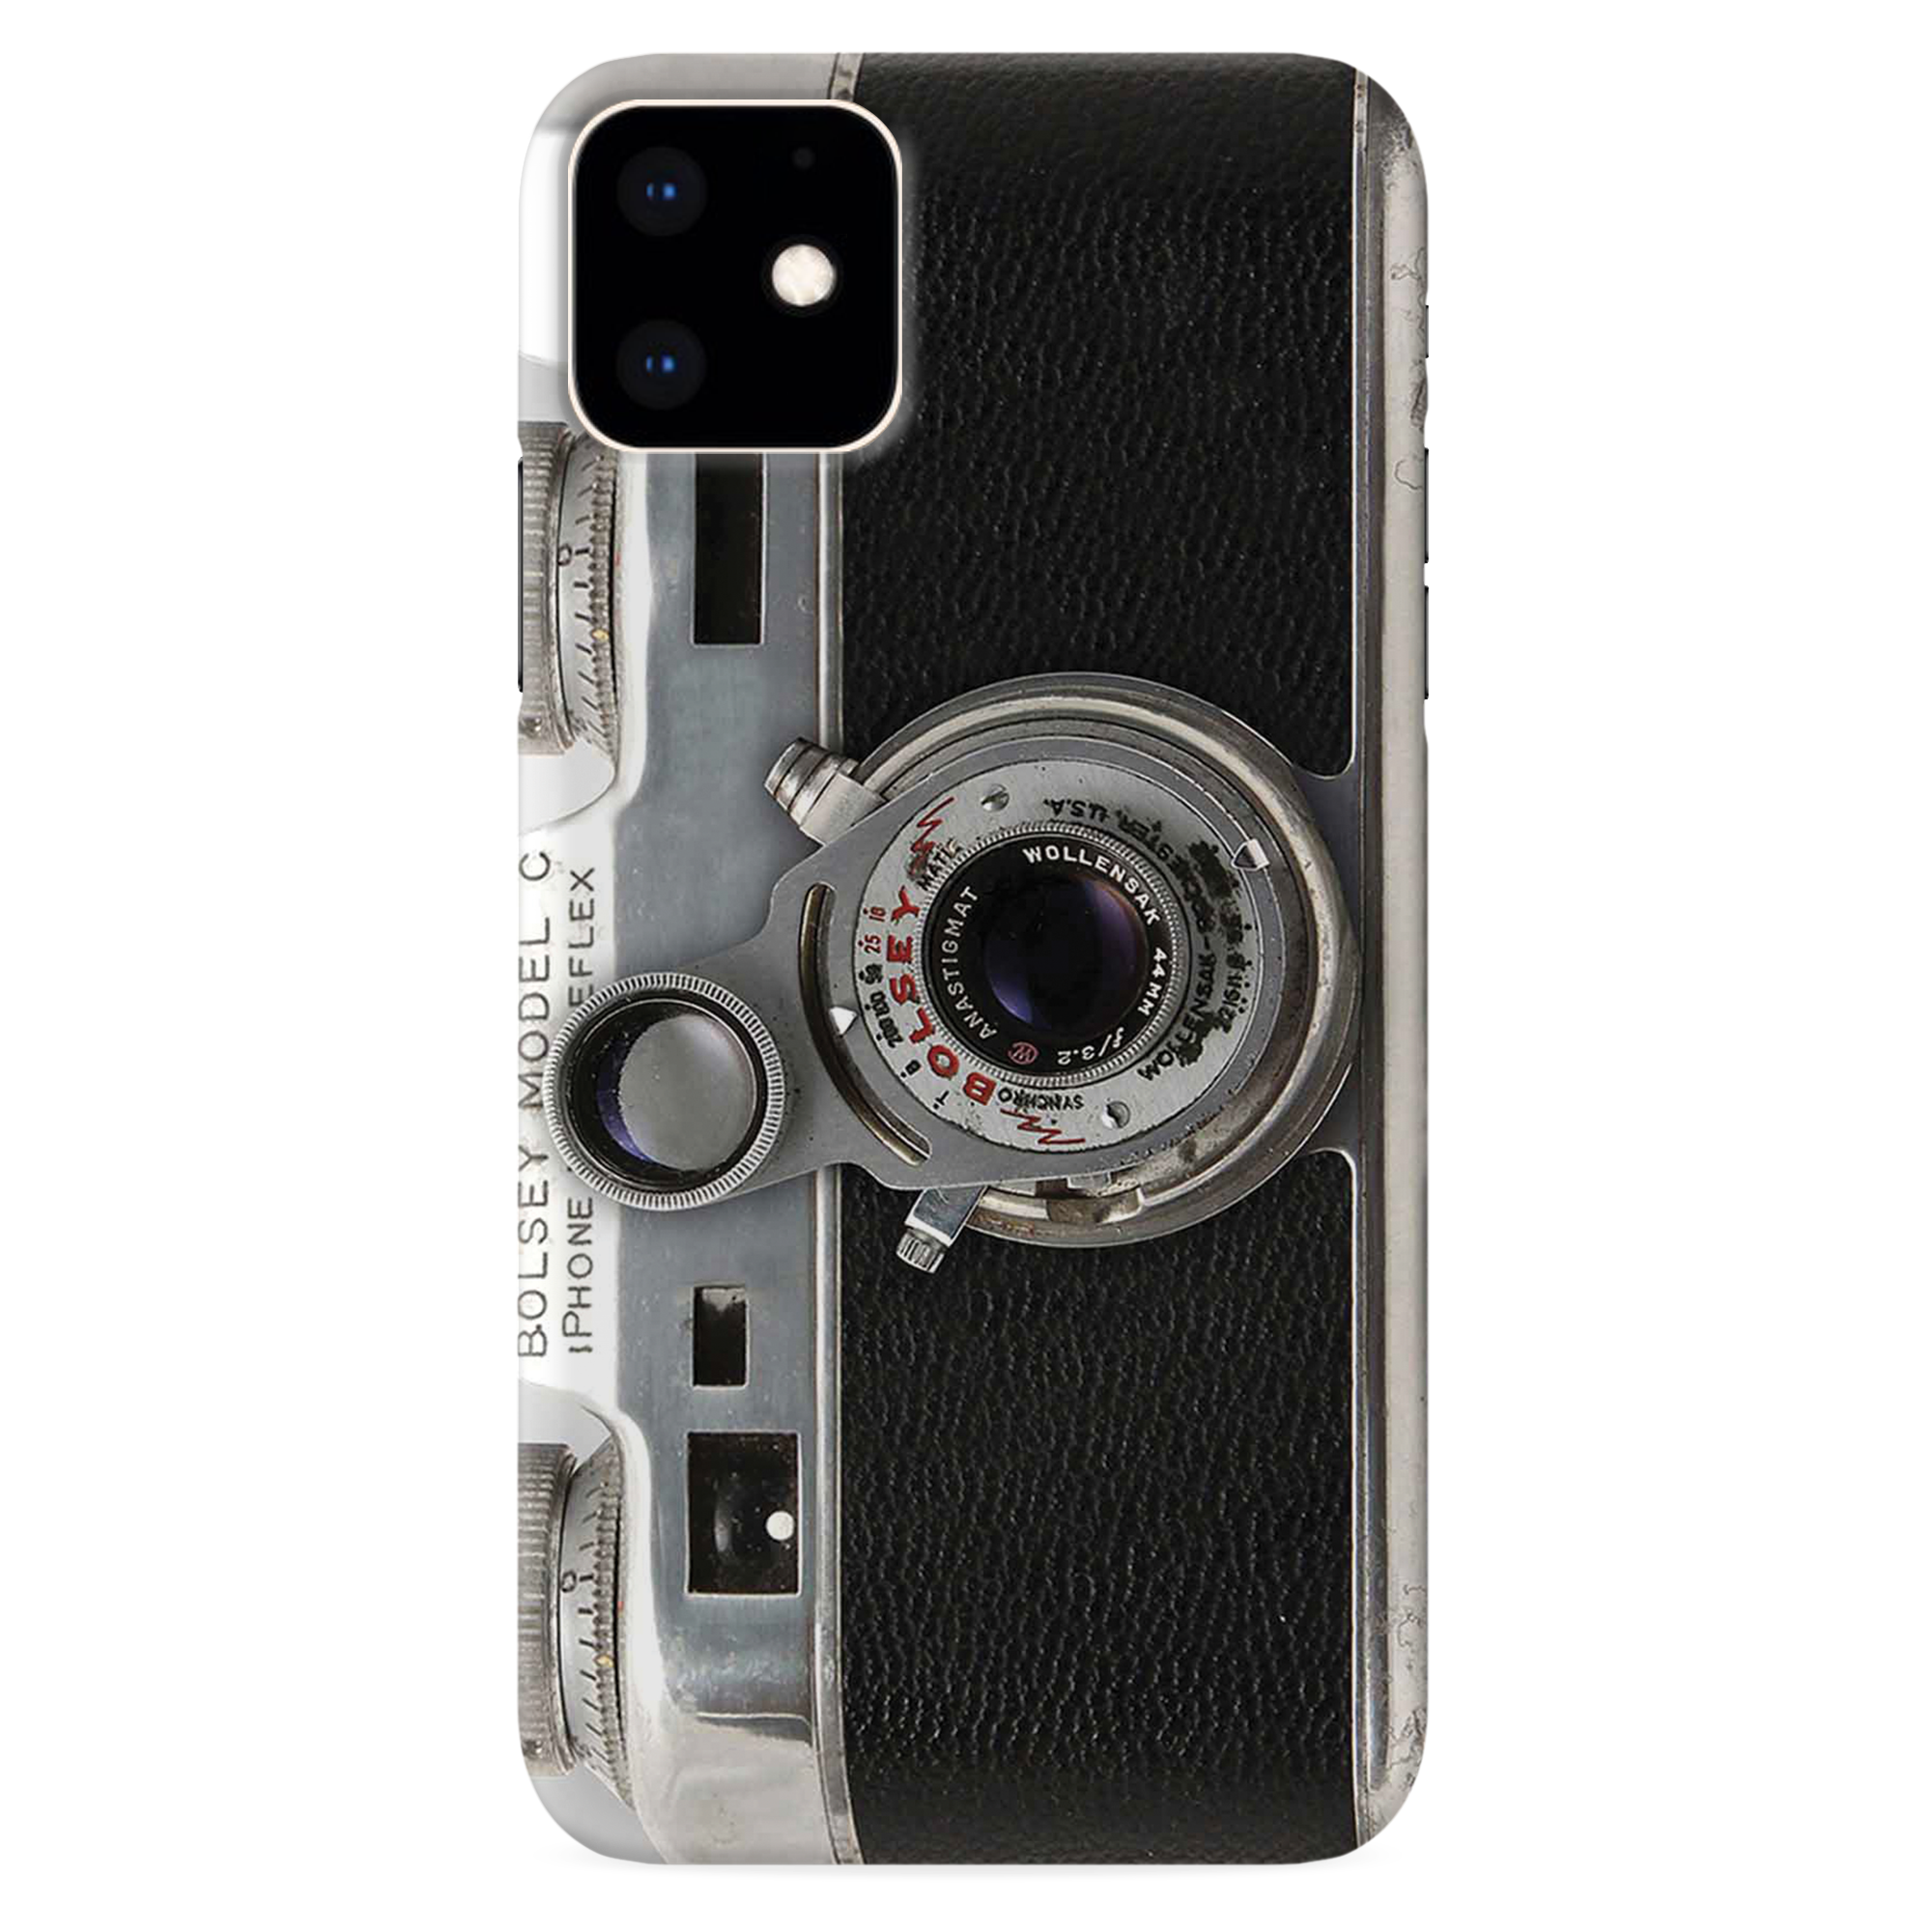 Bolsey Model C Vintage Camera Slim Case And Cover For iPhone 11